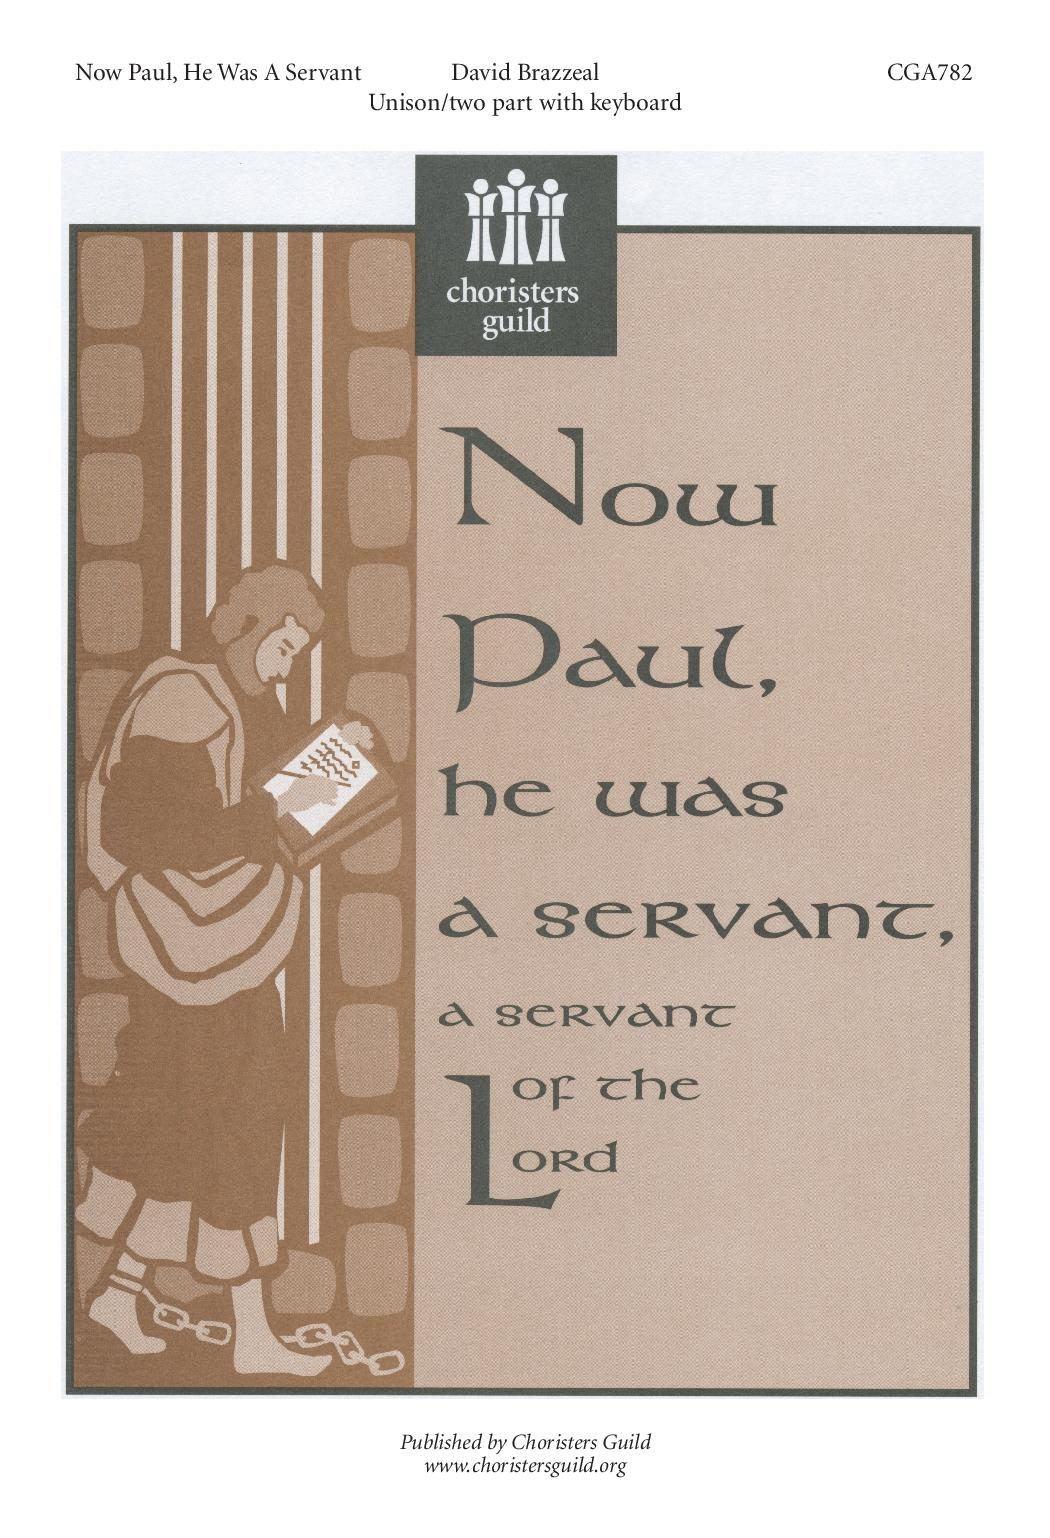 Now Paul, He Was a Servant